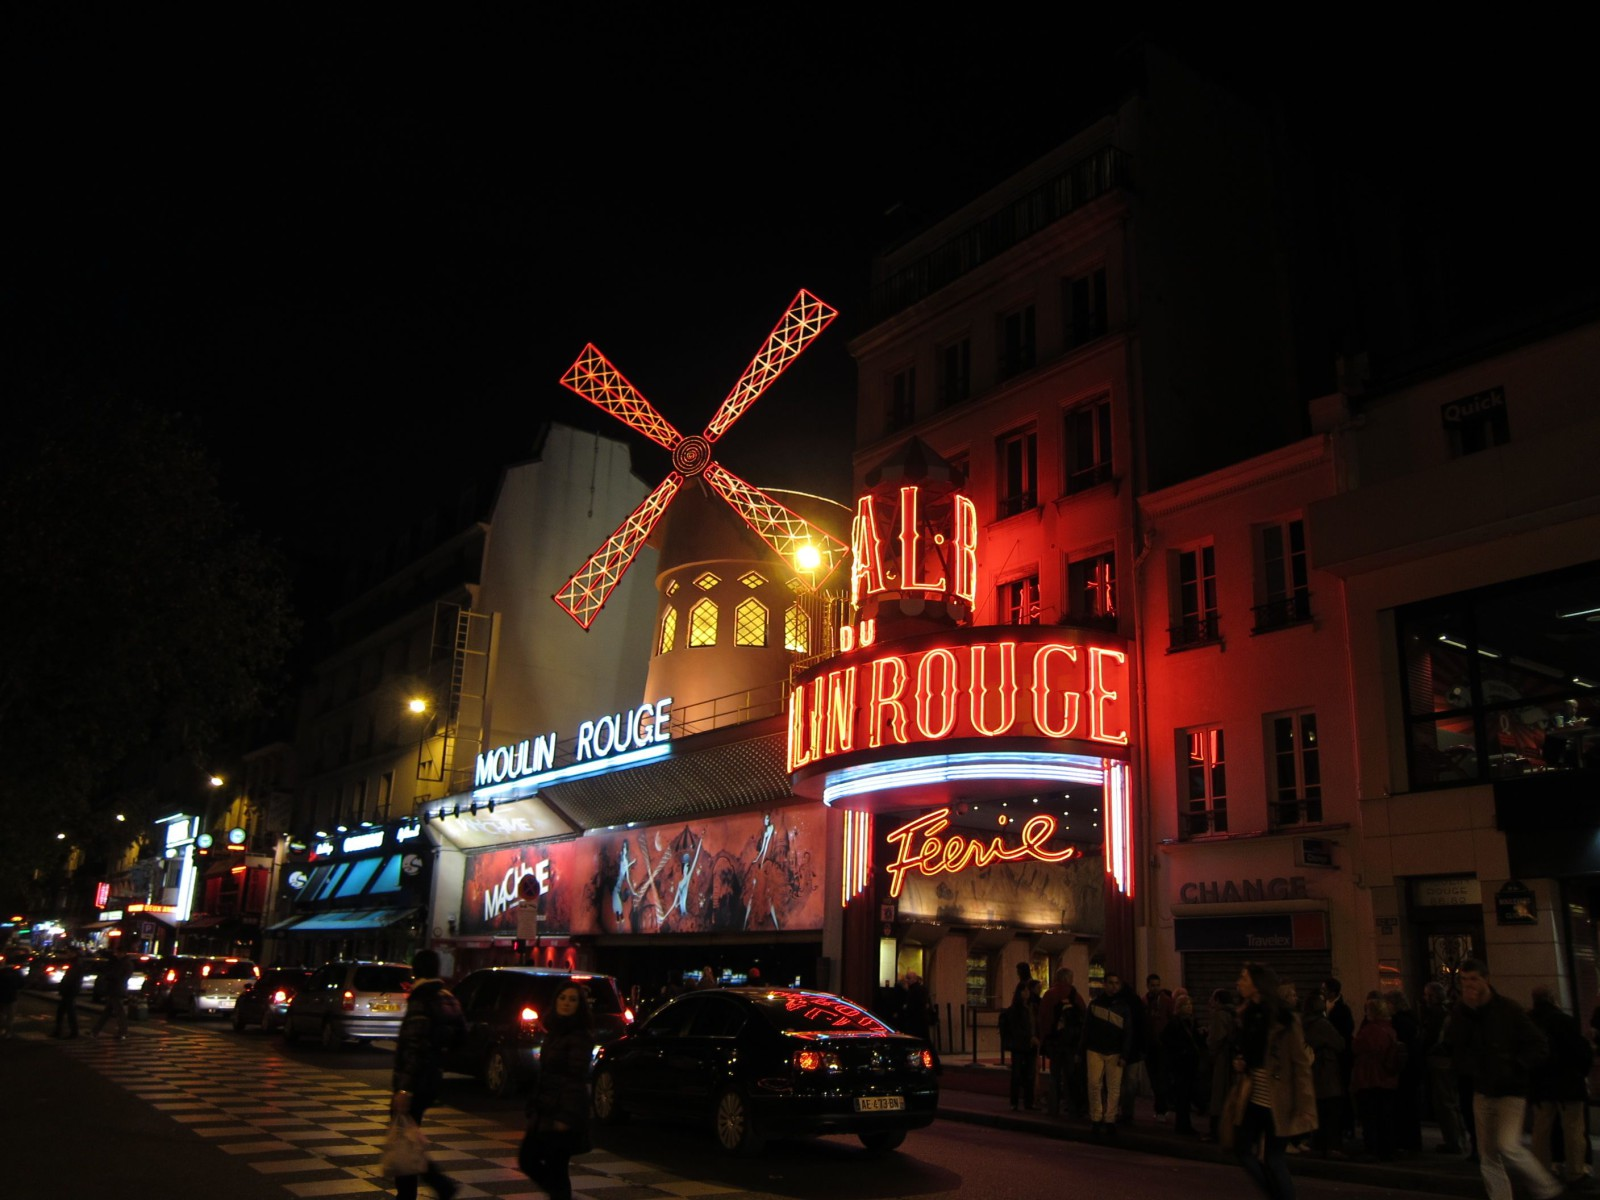 Moulin Rouge - Paris tips | www.rtwgirl.com